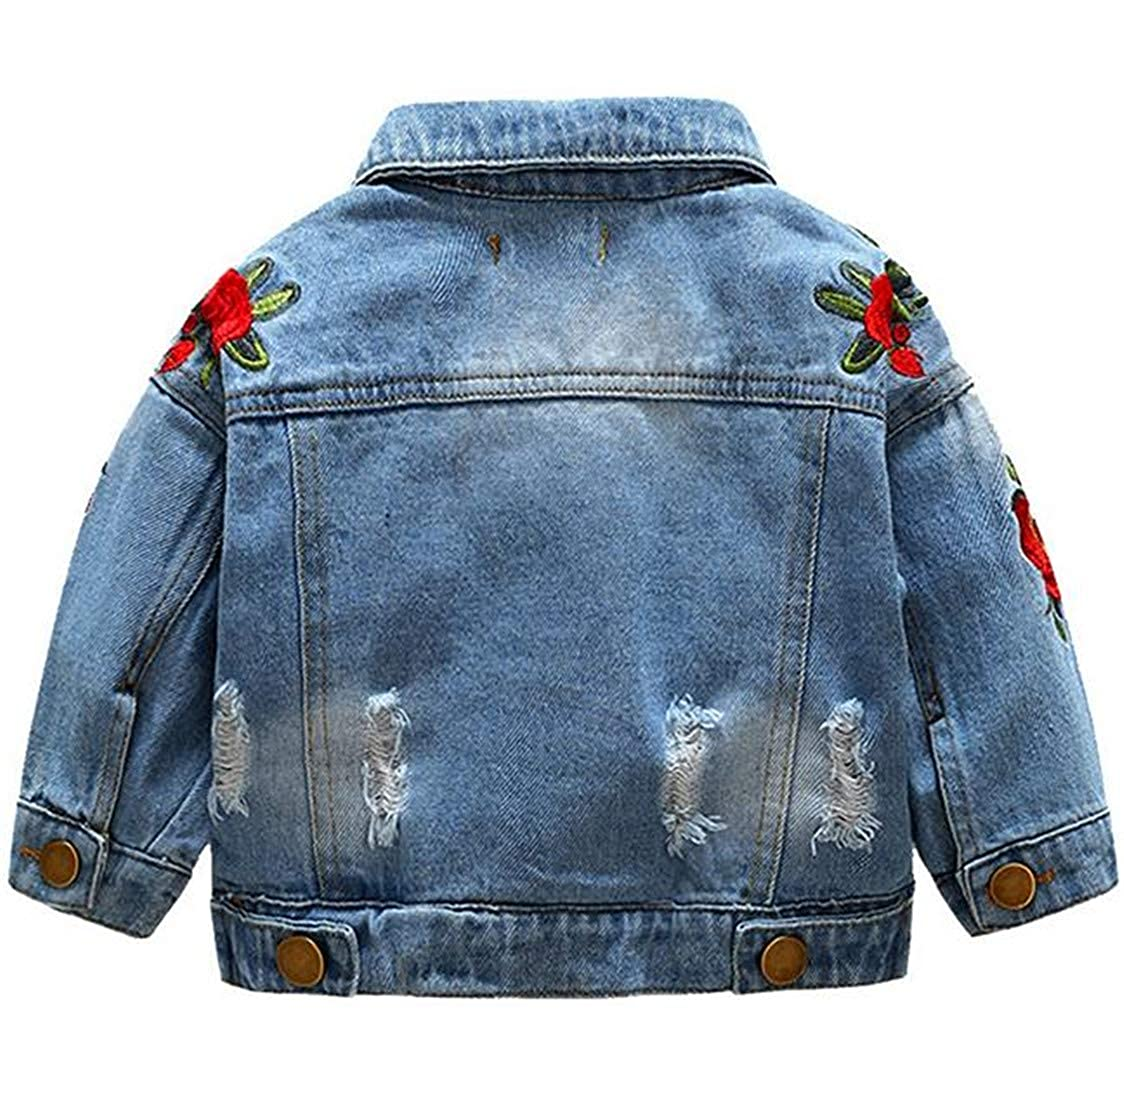 Cromoncent Girl Casual Washed Faded Embroidery Jean Coat Denim Jacket